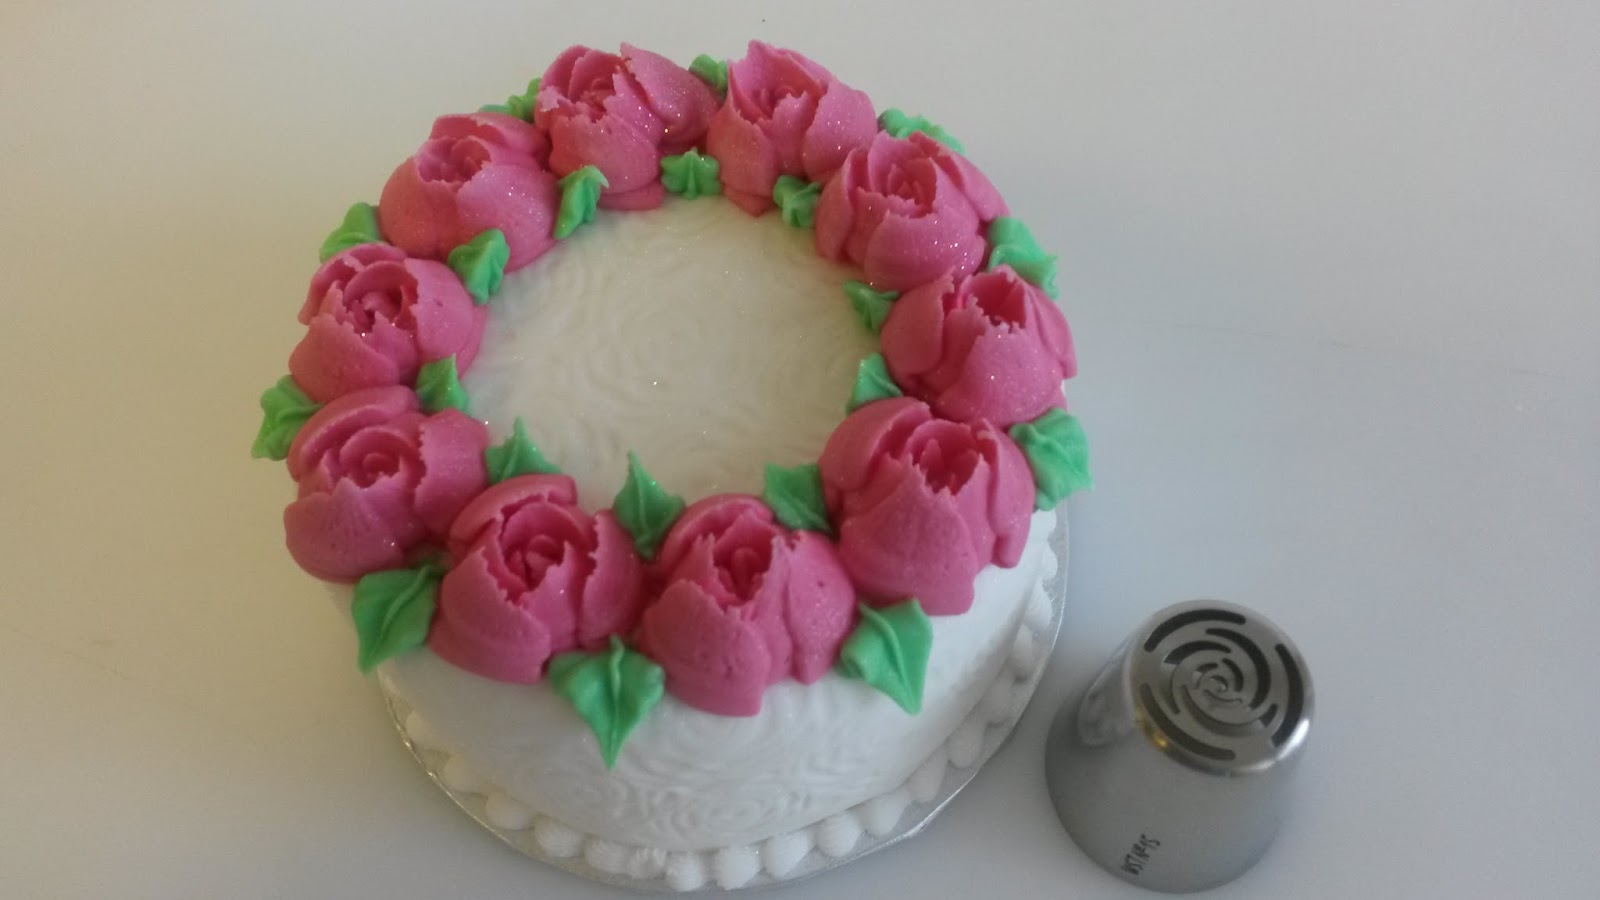 Almond Art Cake Decorating : Almond Art: Easy Rose!